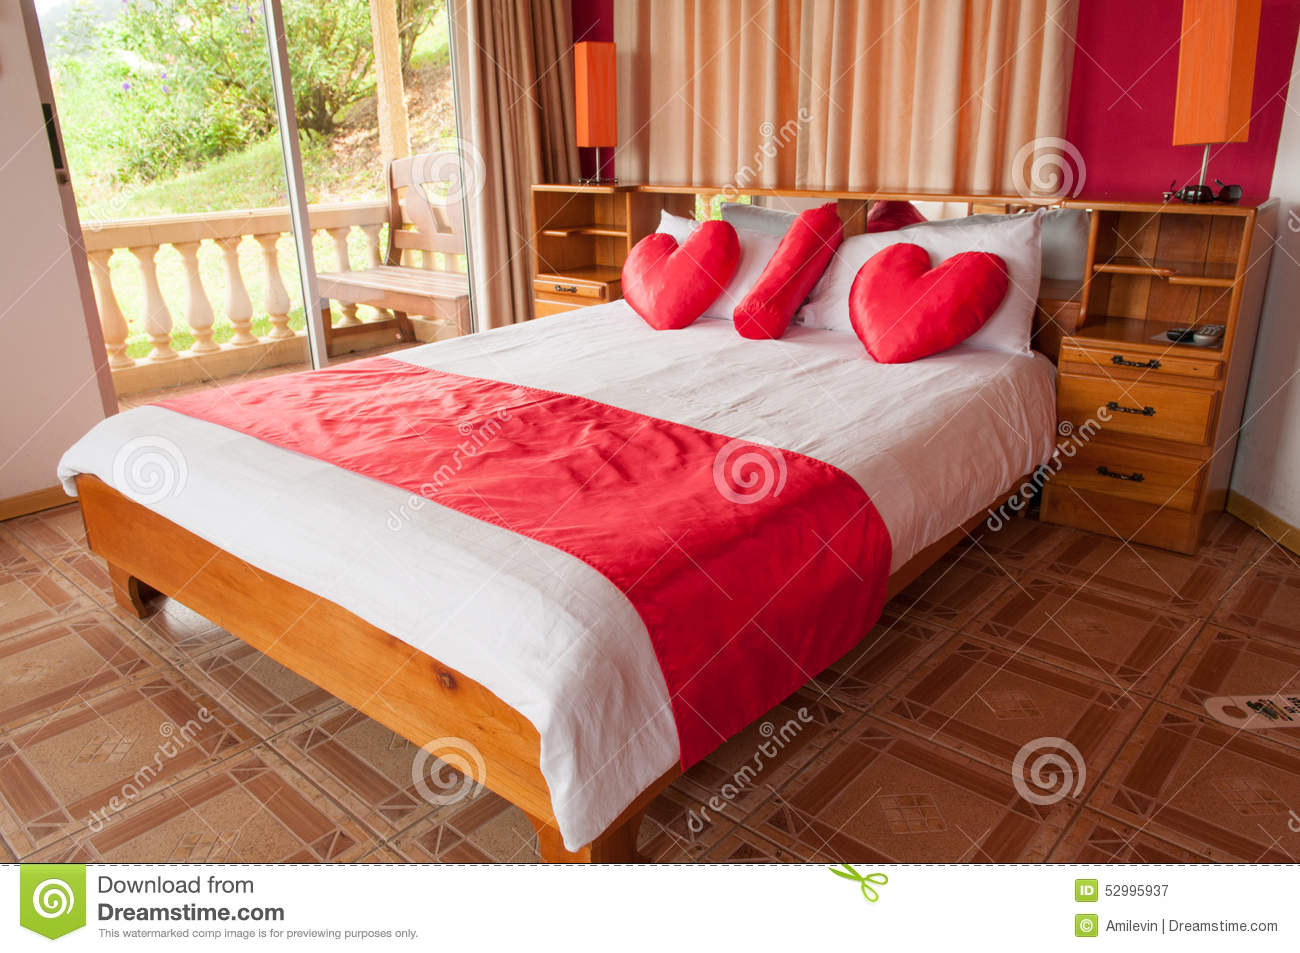 Honeymoon Bed Romantic In Suite Costa Rica Royalty Free Stock Photography